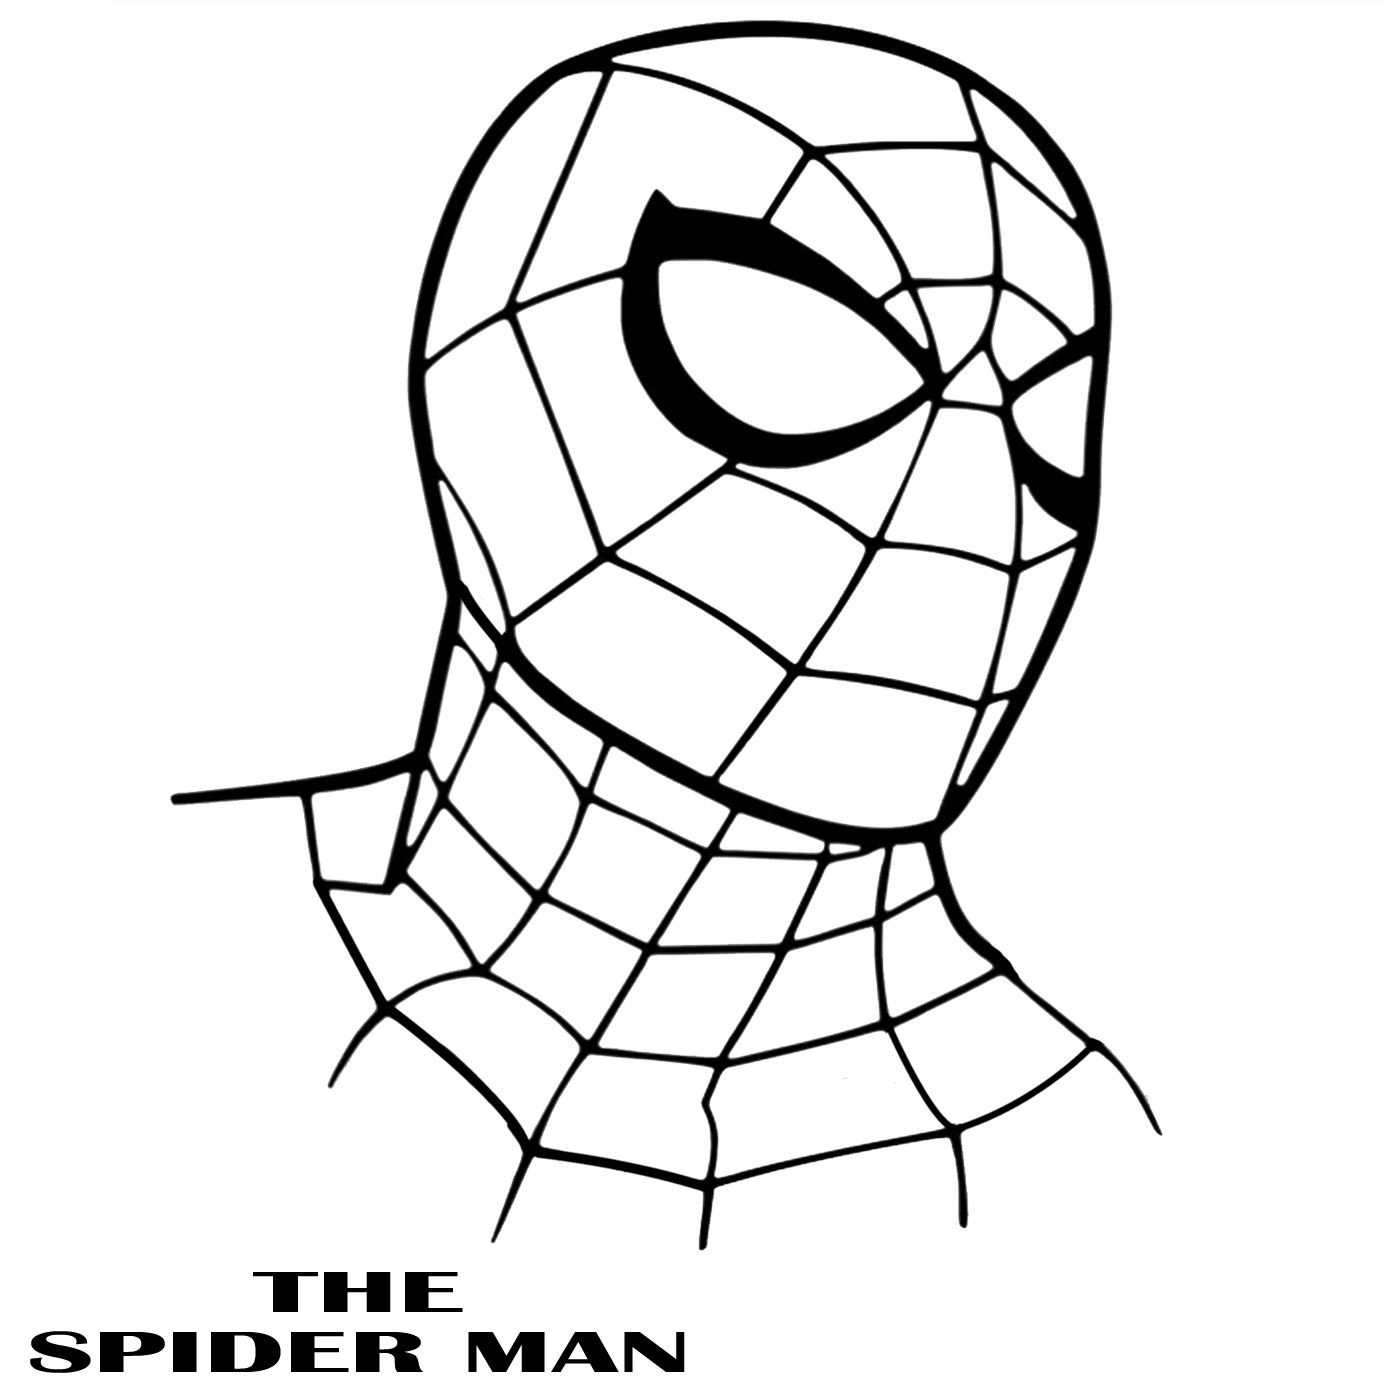 spiderman outline drawing the amazing spider man drawing at getdrawings free download spiderman outline drawing